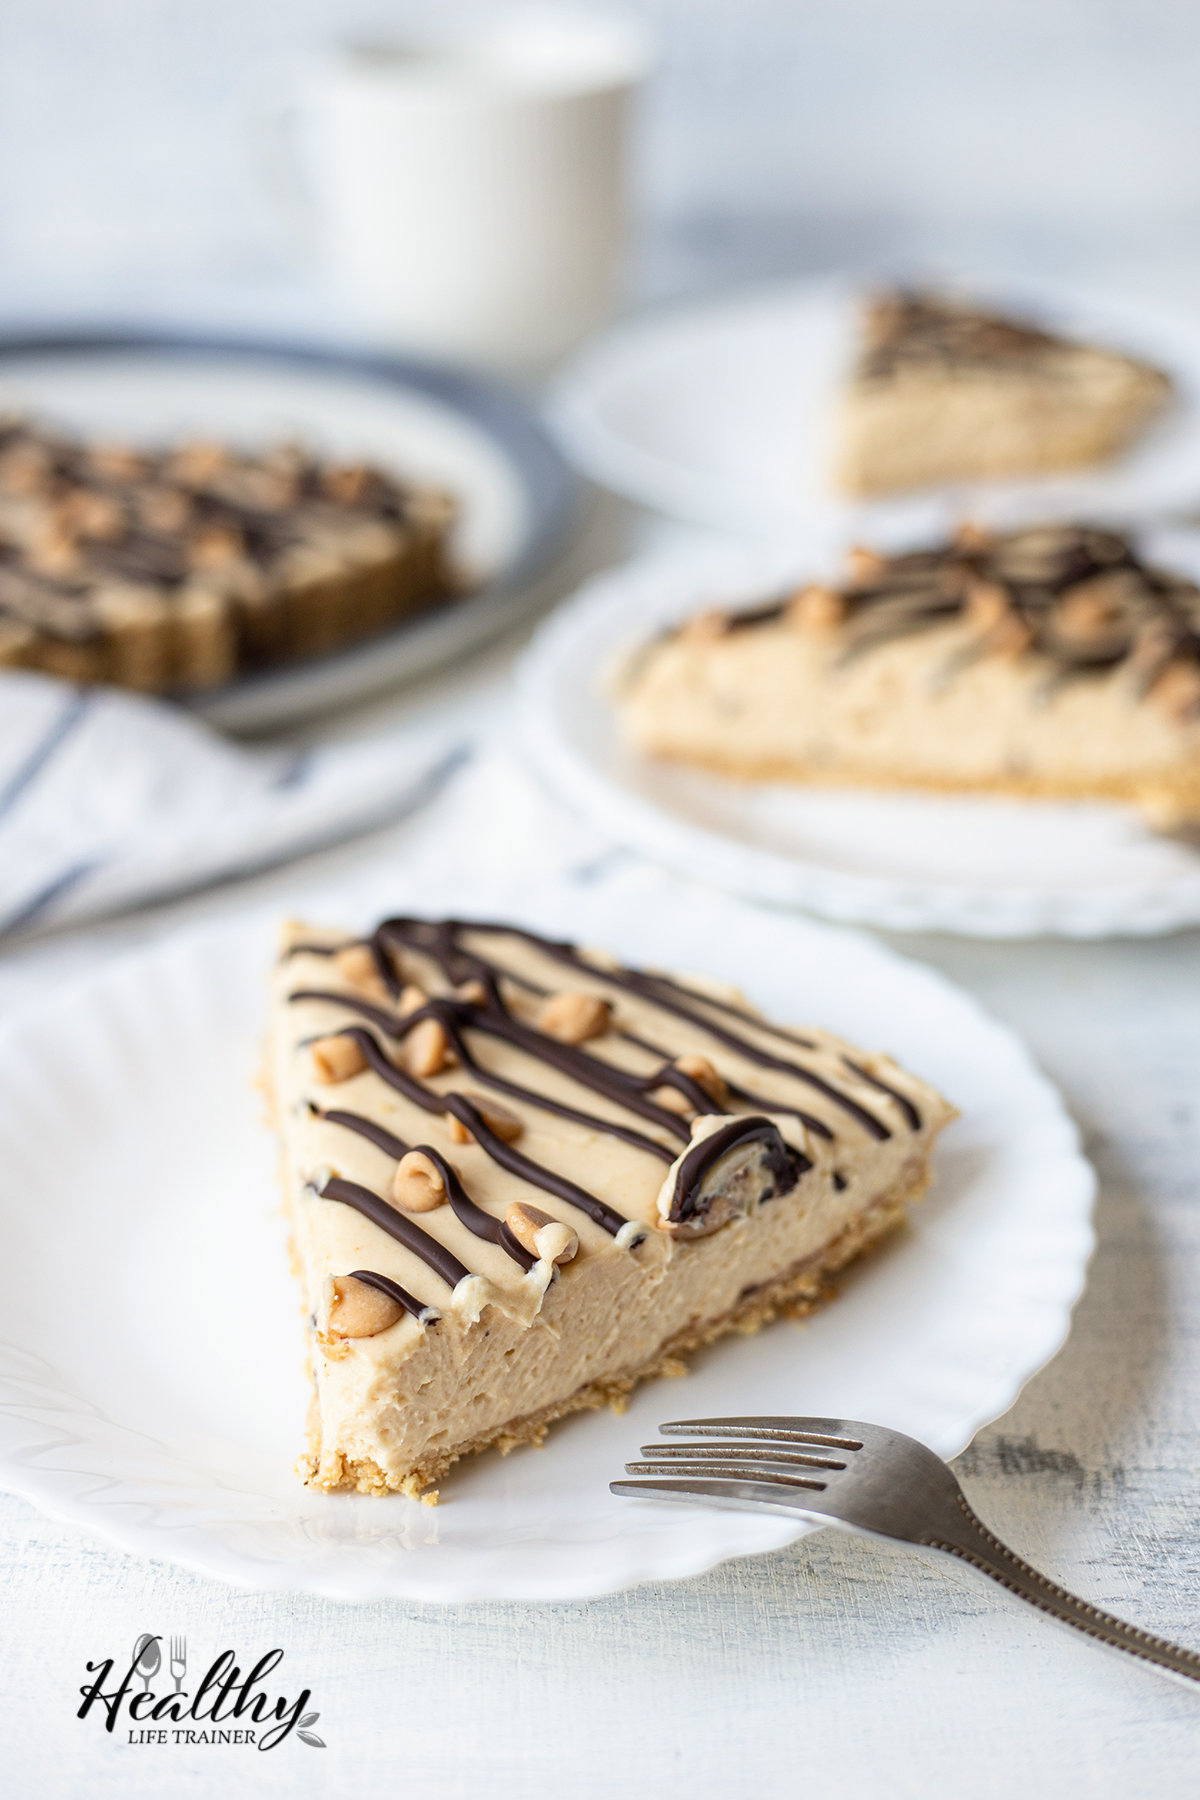 three plates with three slices of the Peanut Butter Pie